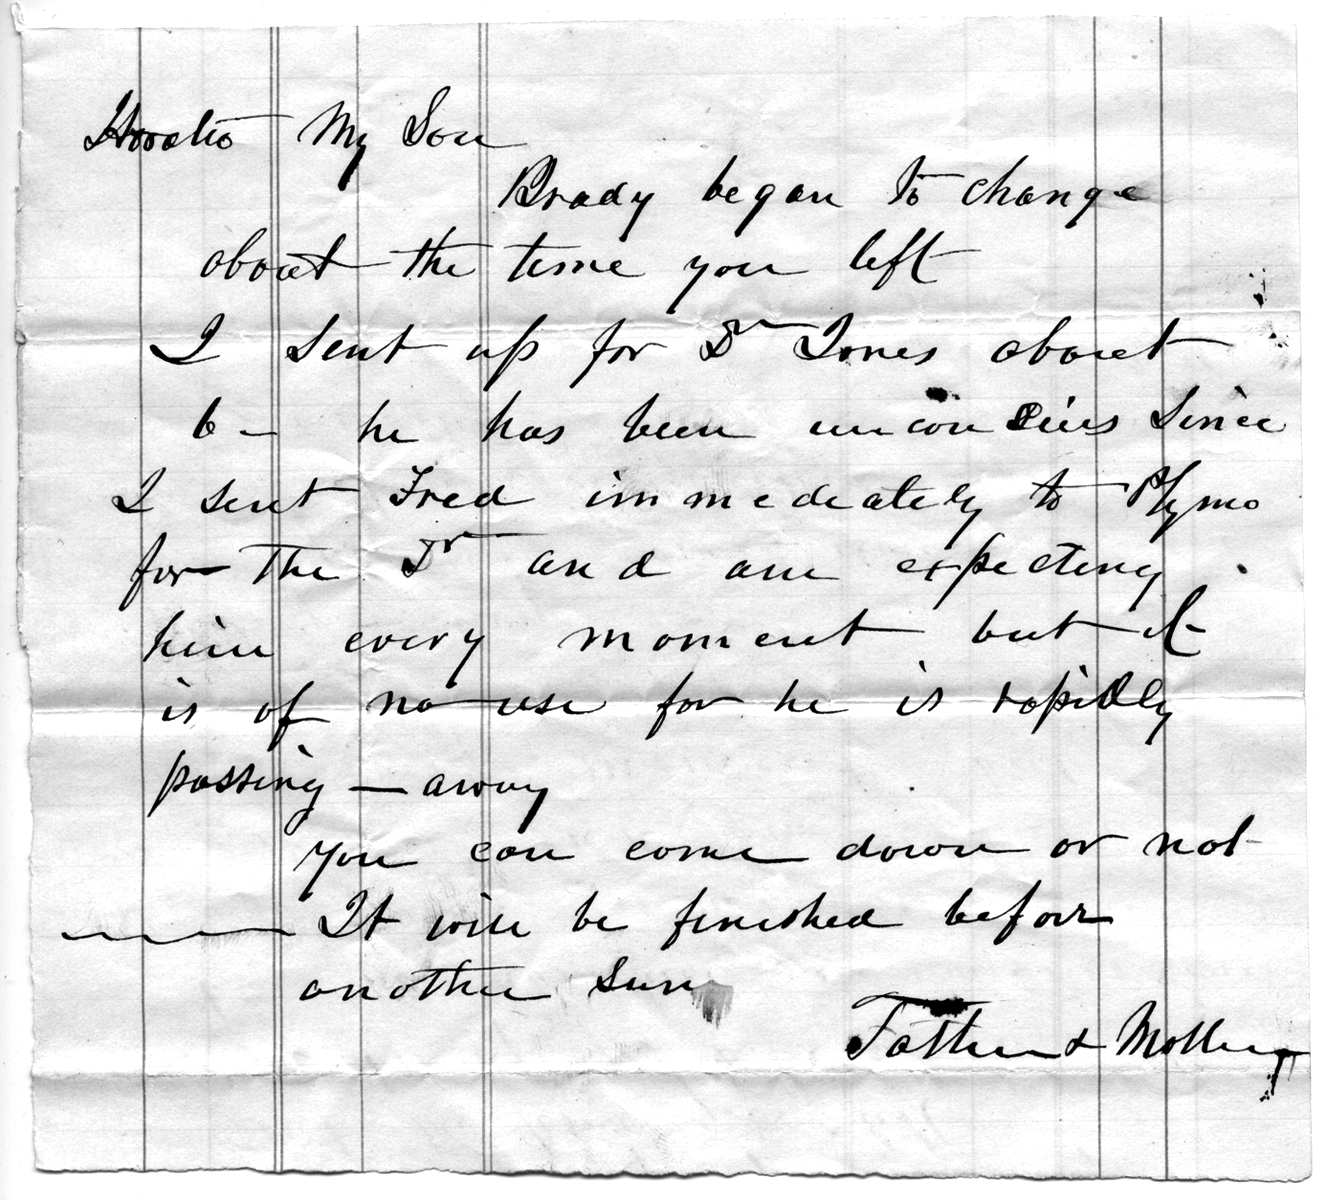 Note to Horatio from Father and Mother, October 1870 (date supplied)